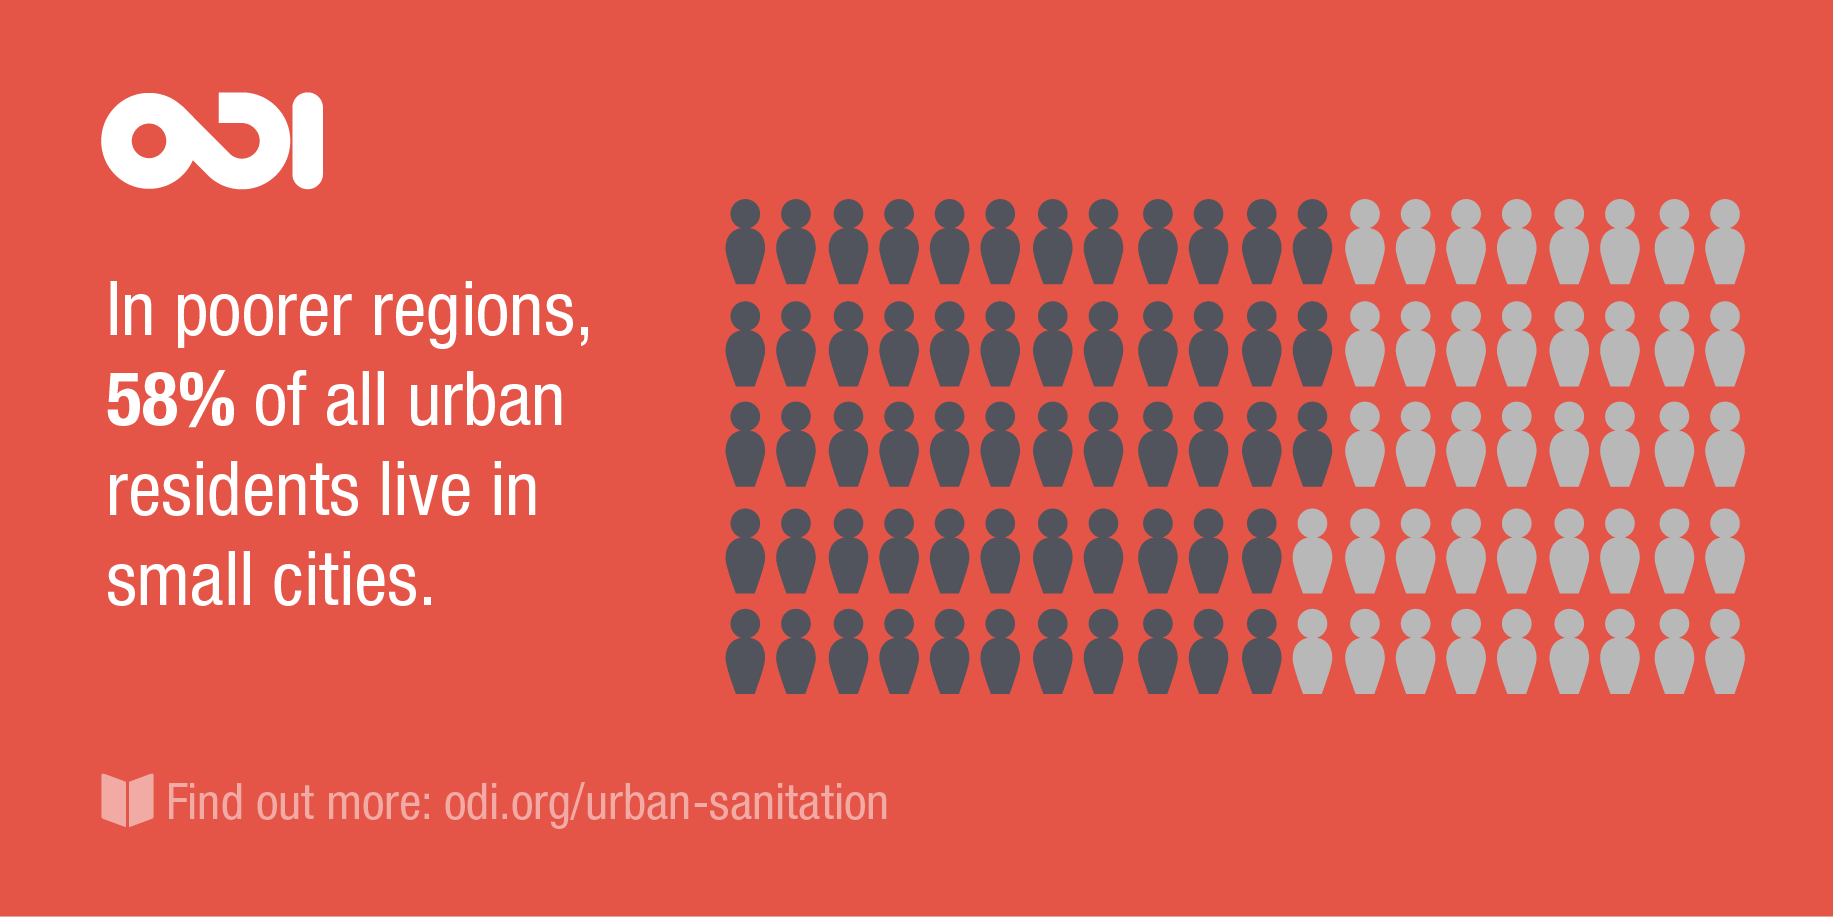 In poorer regions, 58% of all urban residents live in small cities.